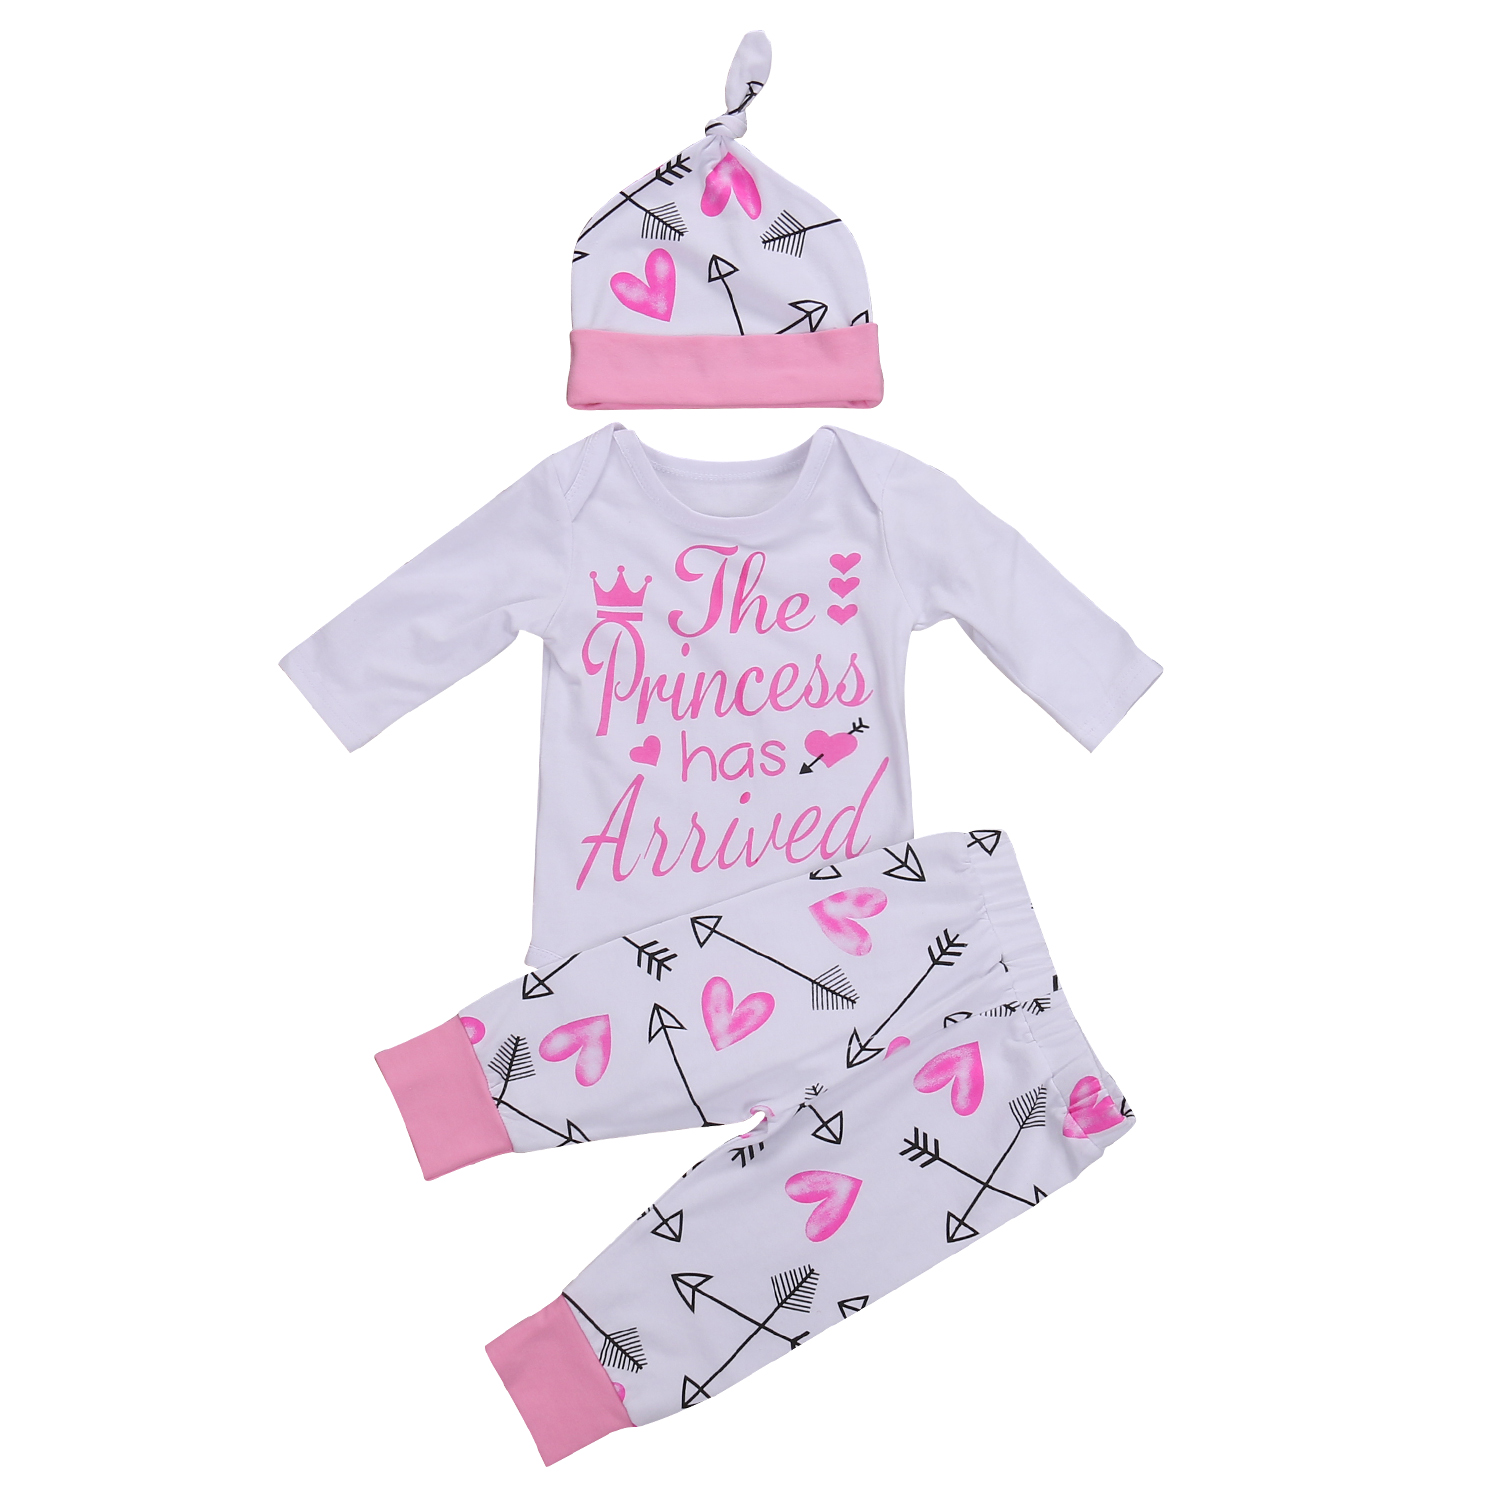 Autumn Toddler Newborn Baby Girls Clothes Letter Print Romper Jumpsuit+Long Pants Hat Outfit Cute Cotton Clothing 3pcs 0-24M baby romper sets for girls newborn infant bebe clothes toddler children clothes cotton girls jumpsuit clothes suit for 3 24m